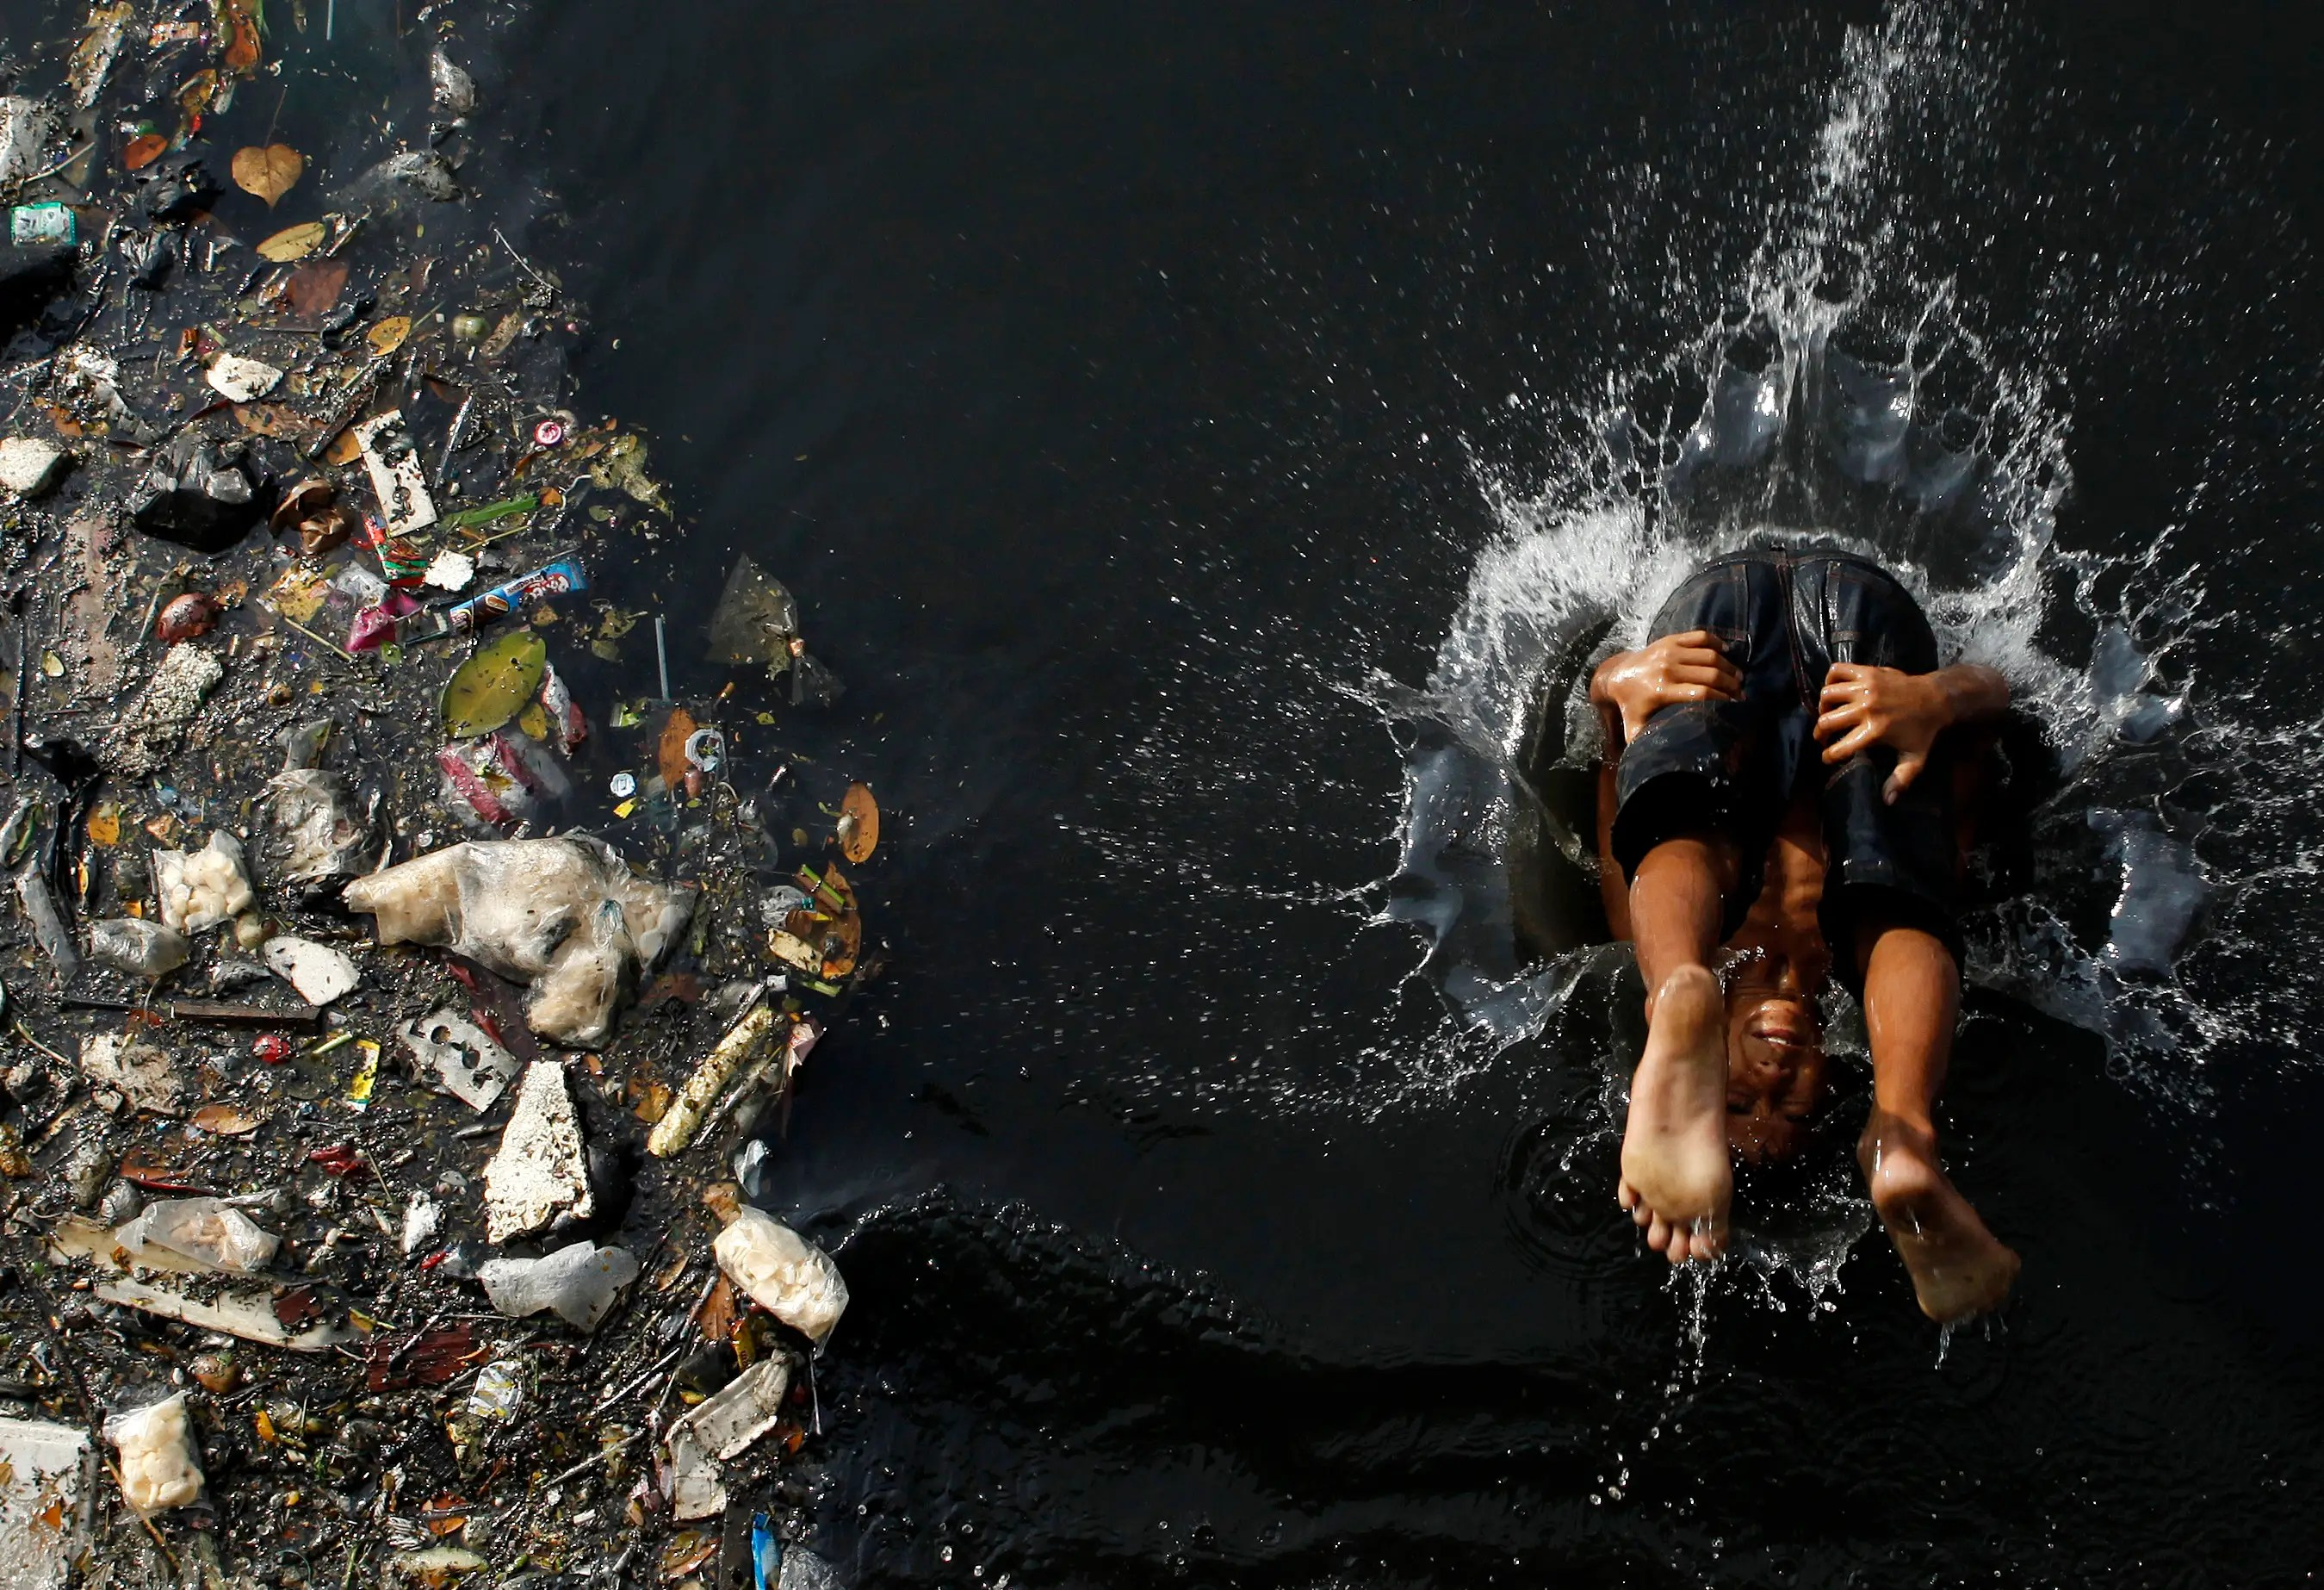 As our world grows, it's becoming disturbingly polluted. This boy cannonballs into a polluted river in Jakarta, Indonesia, while piles of garbage drift by next to him.